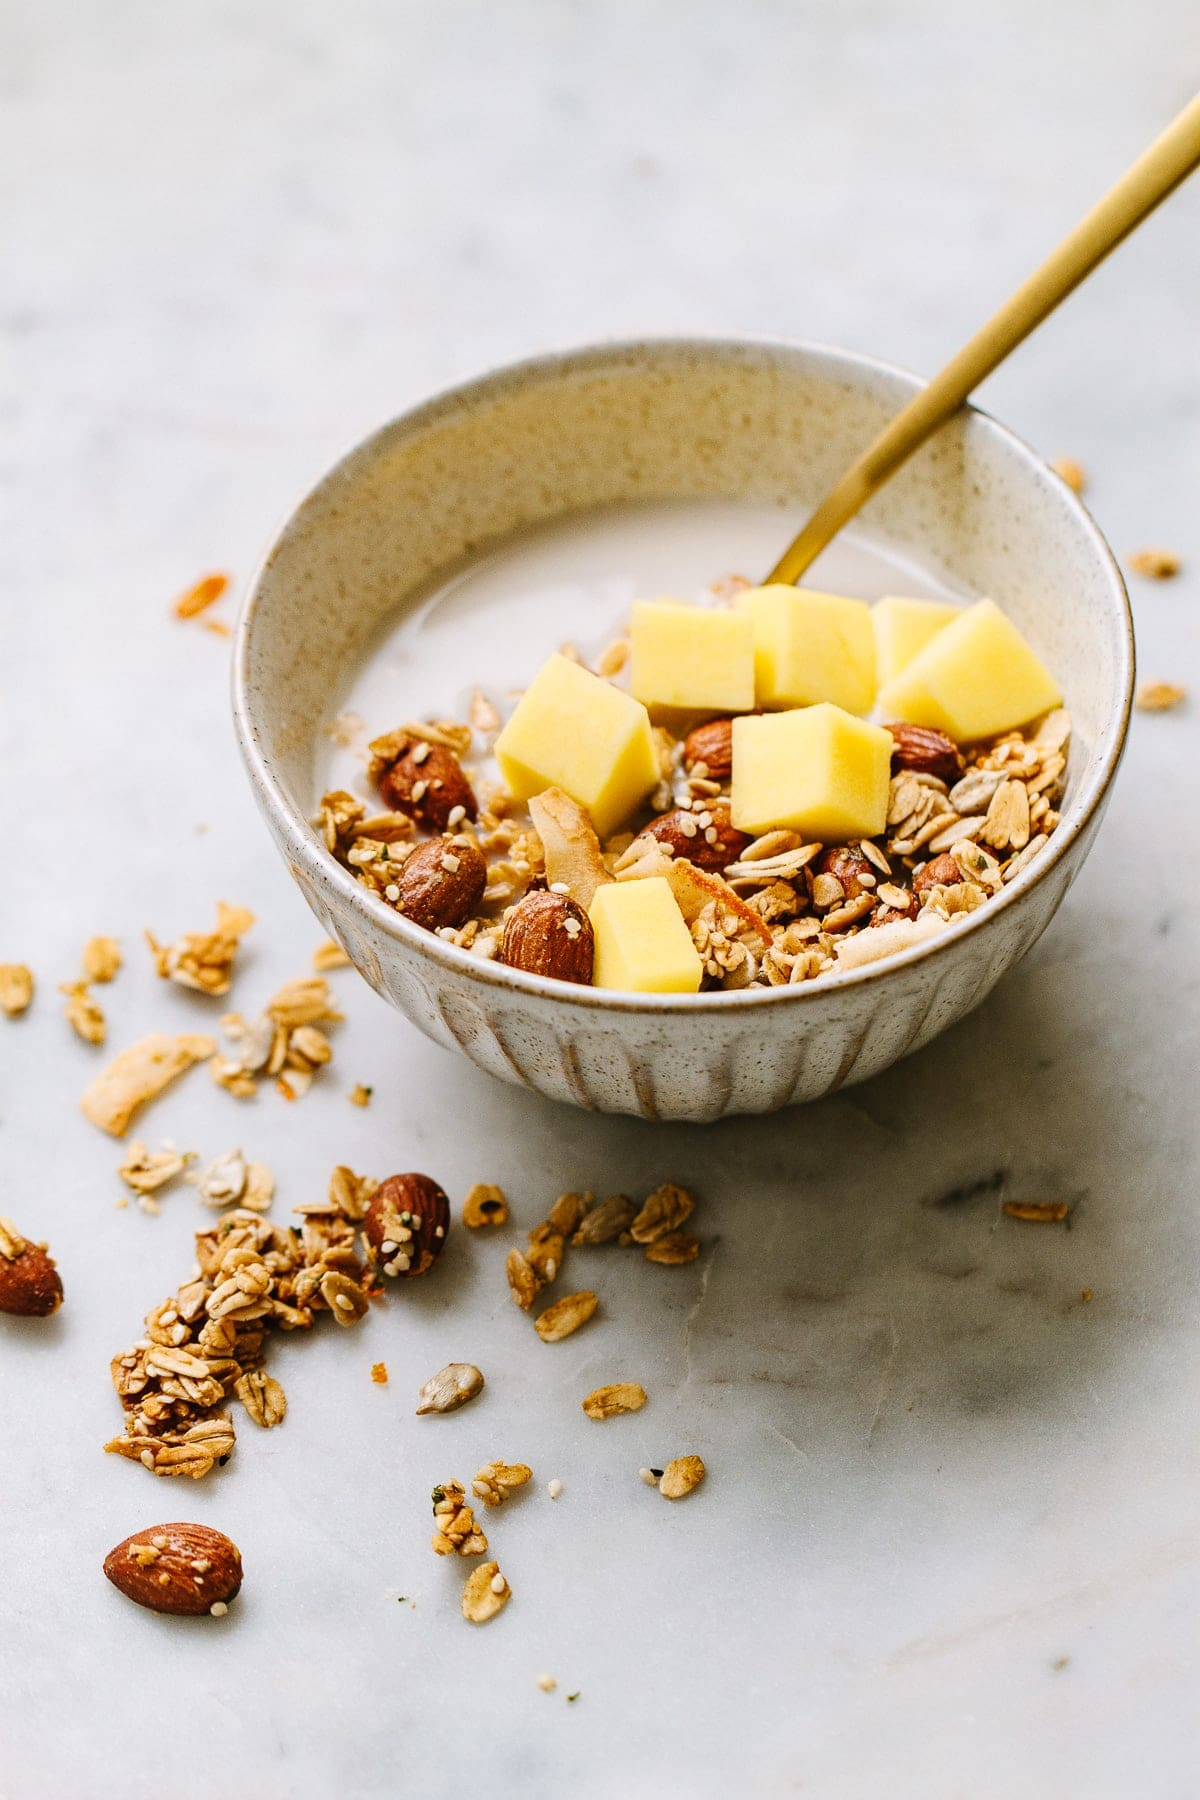 side angle view of a small bowl with a serving of healthy orange ginger granola with cashew milk and diced mango with gold spoon.